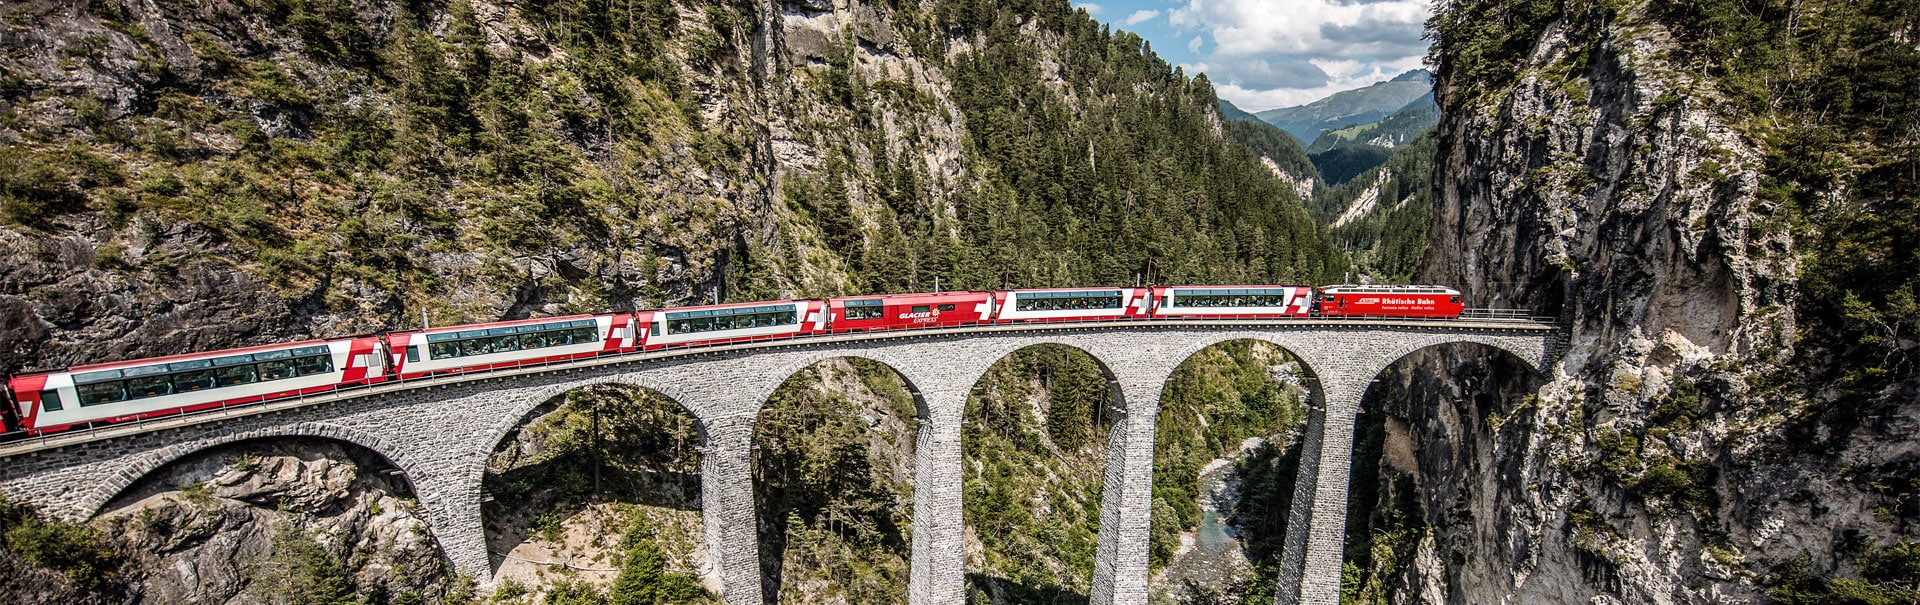 Best of Switzerland with Glacier Express (SHSW9) Banner